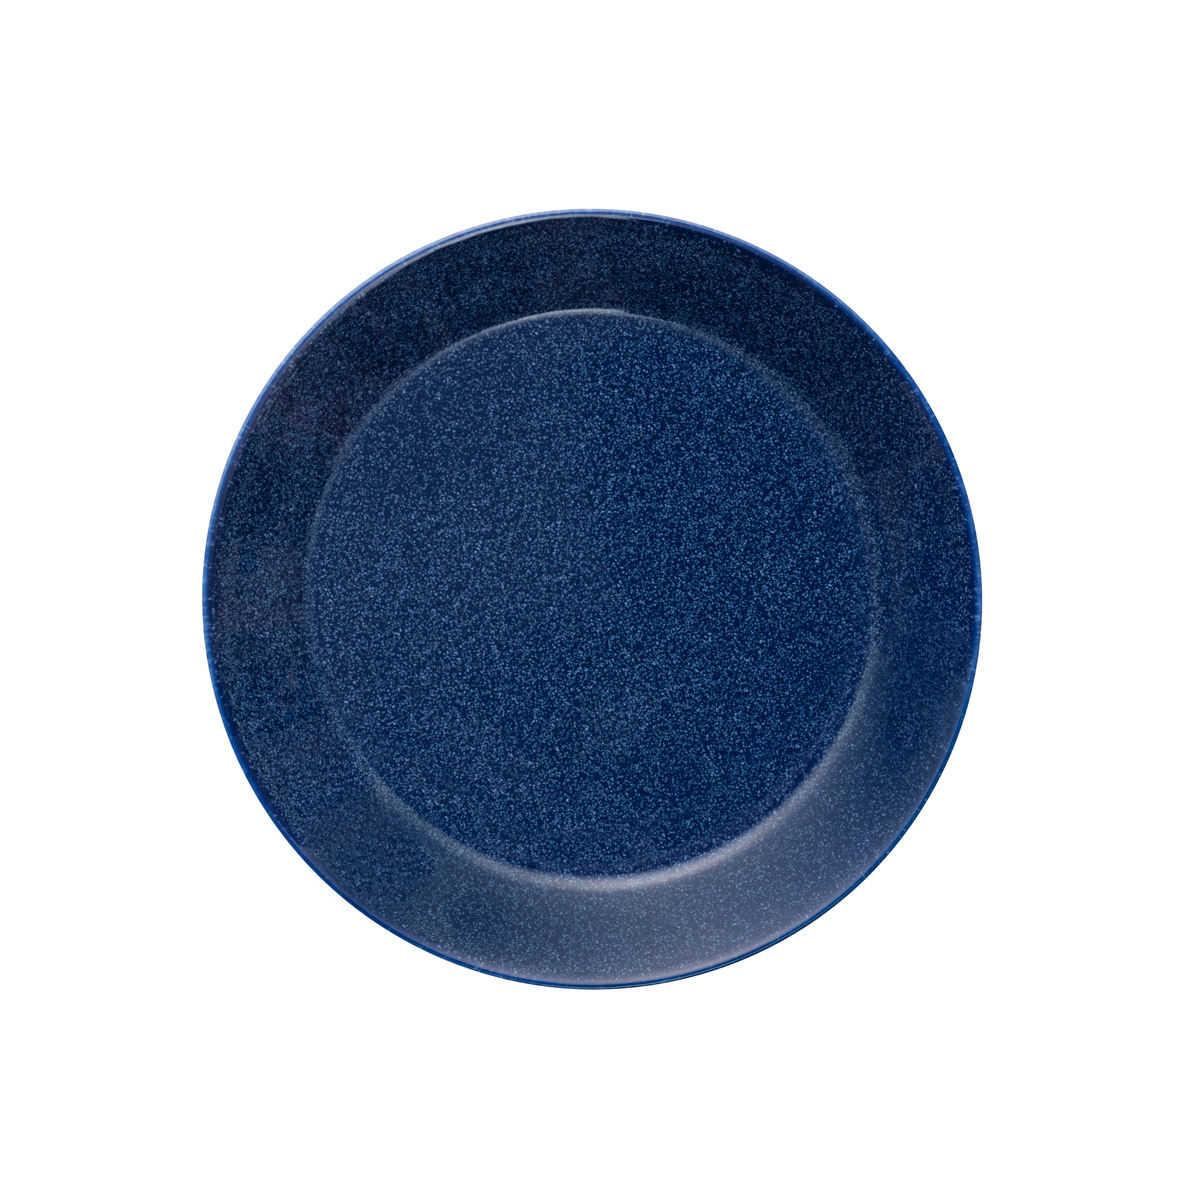 iittala teema dotted blue bread butter plate iittala teema dotted blue dinnerware. Black Bedroom Furniture Sets. Home Design Ideas